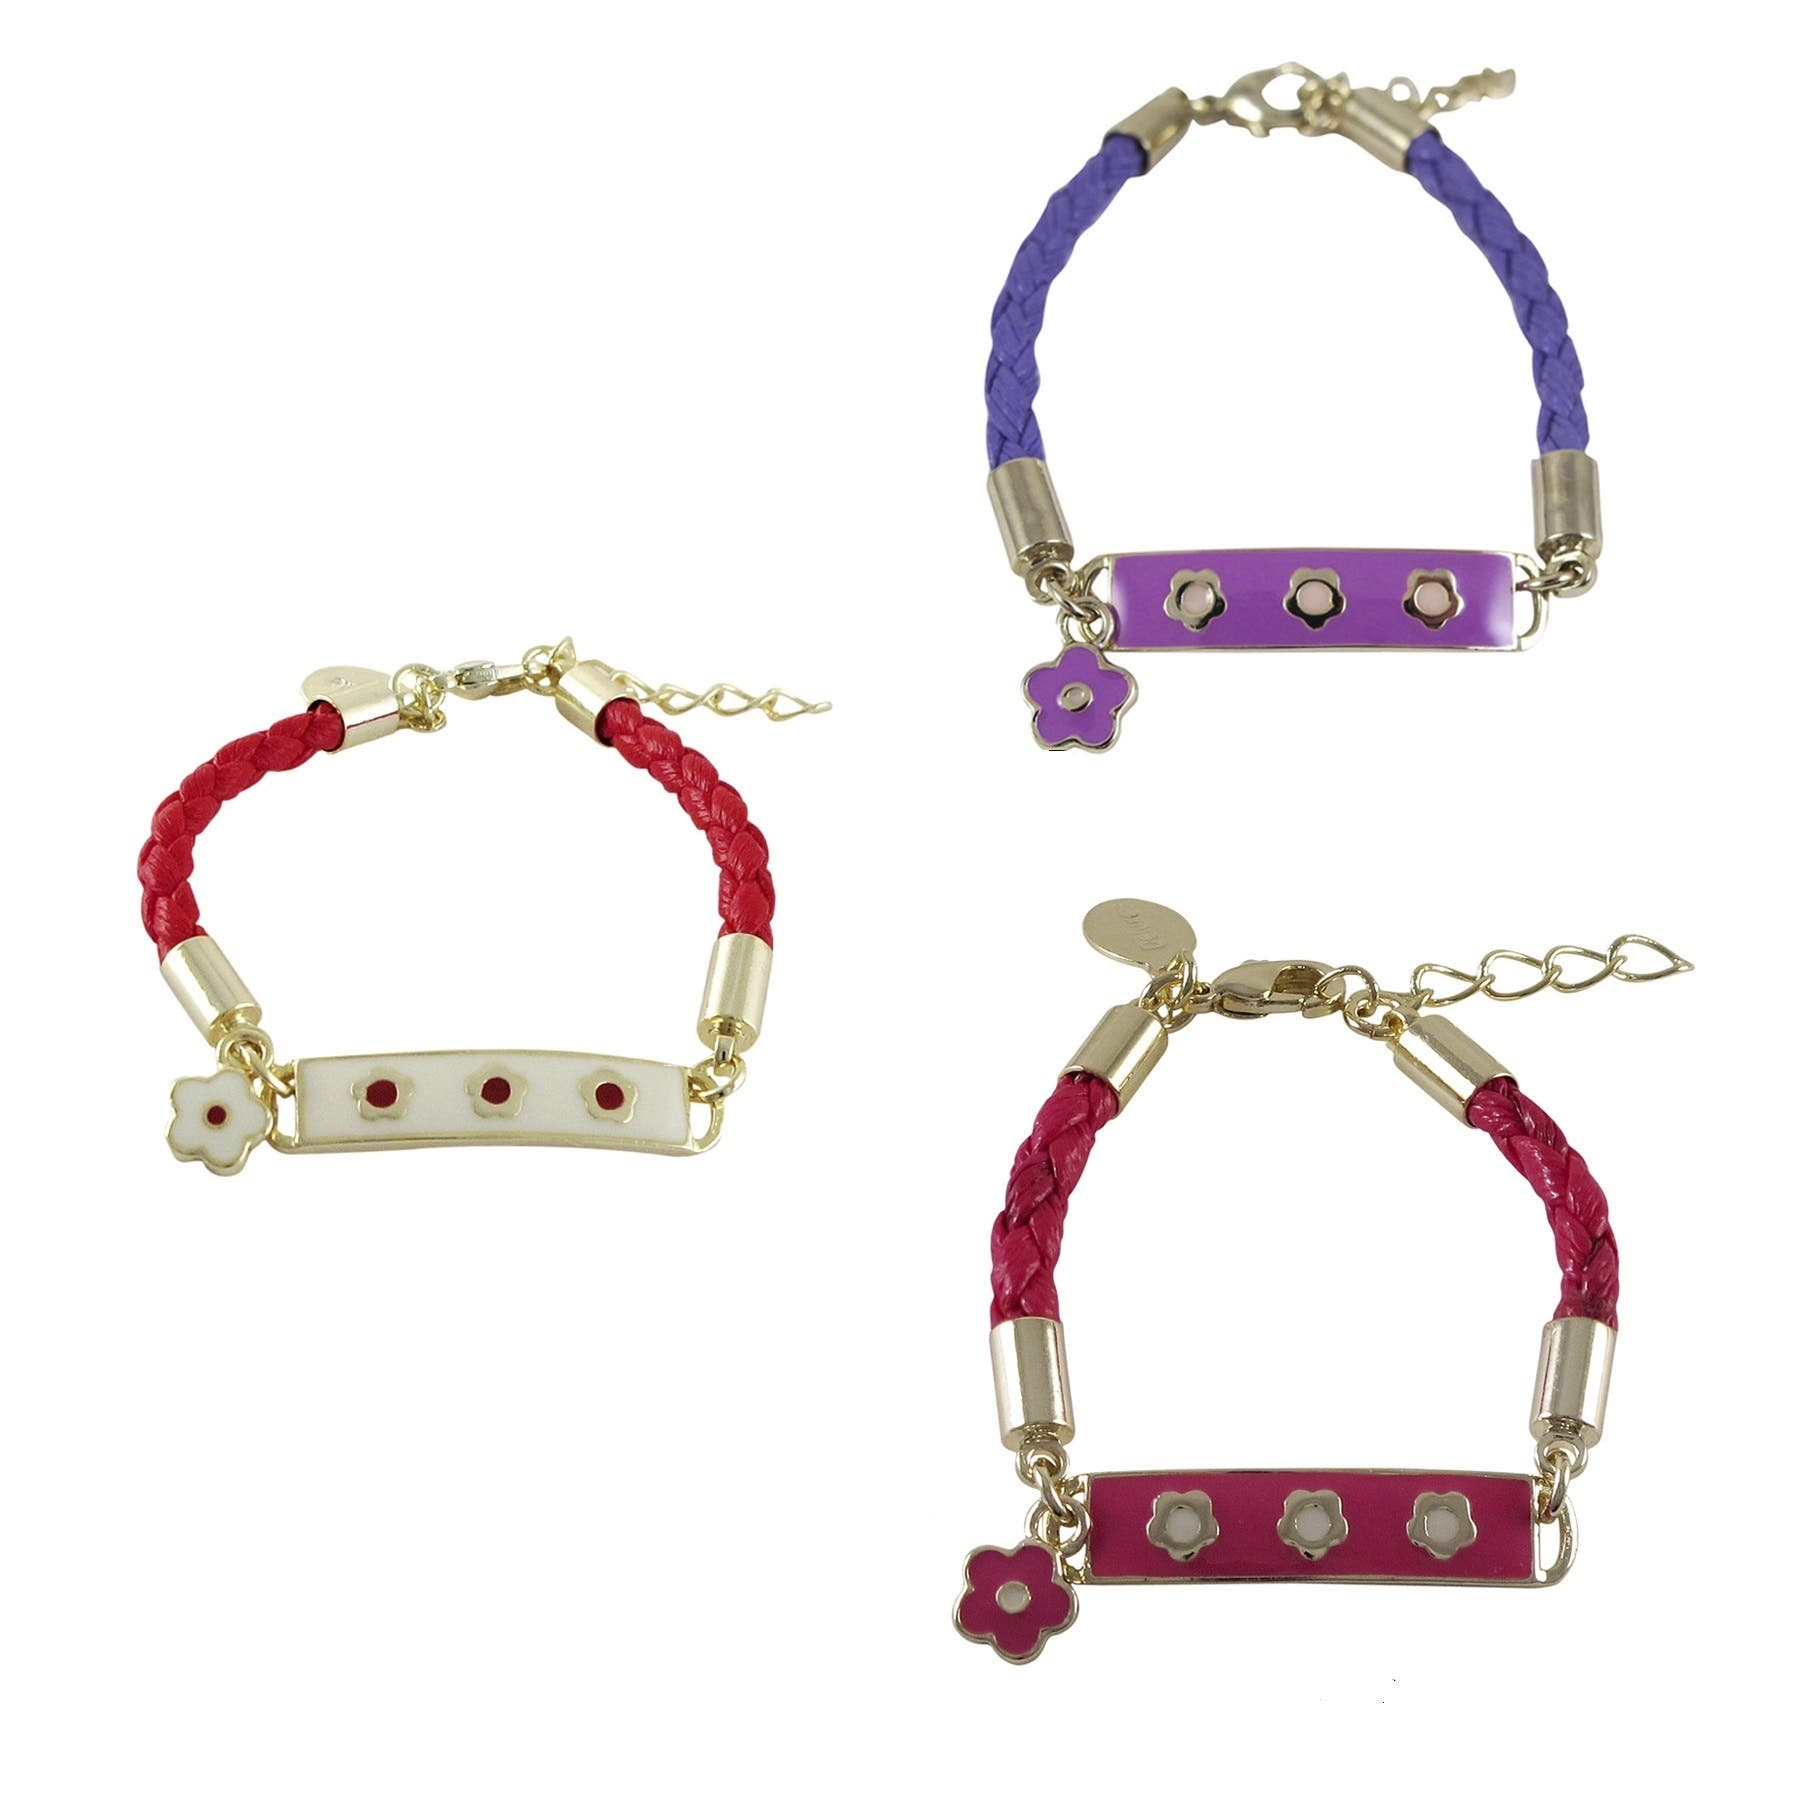 Luxiro Goldplated Girls Enameled Flower Charm ID Leather Rope Bracelet|https://ak1.ostkcdn.com/images/products/P16434525A.jpg?impolicy=medium